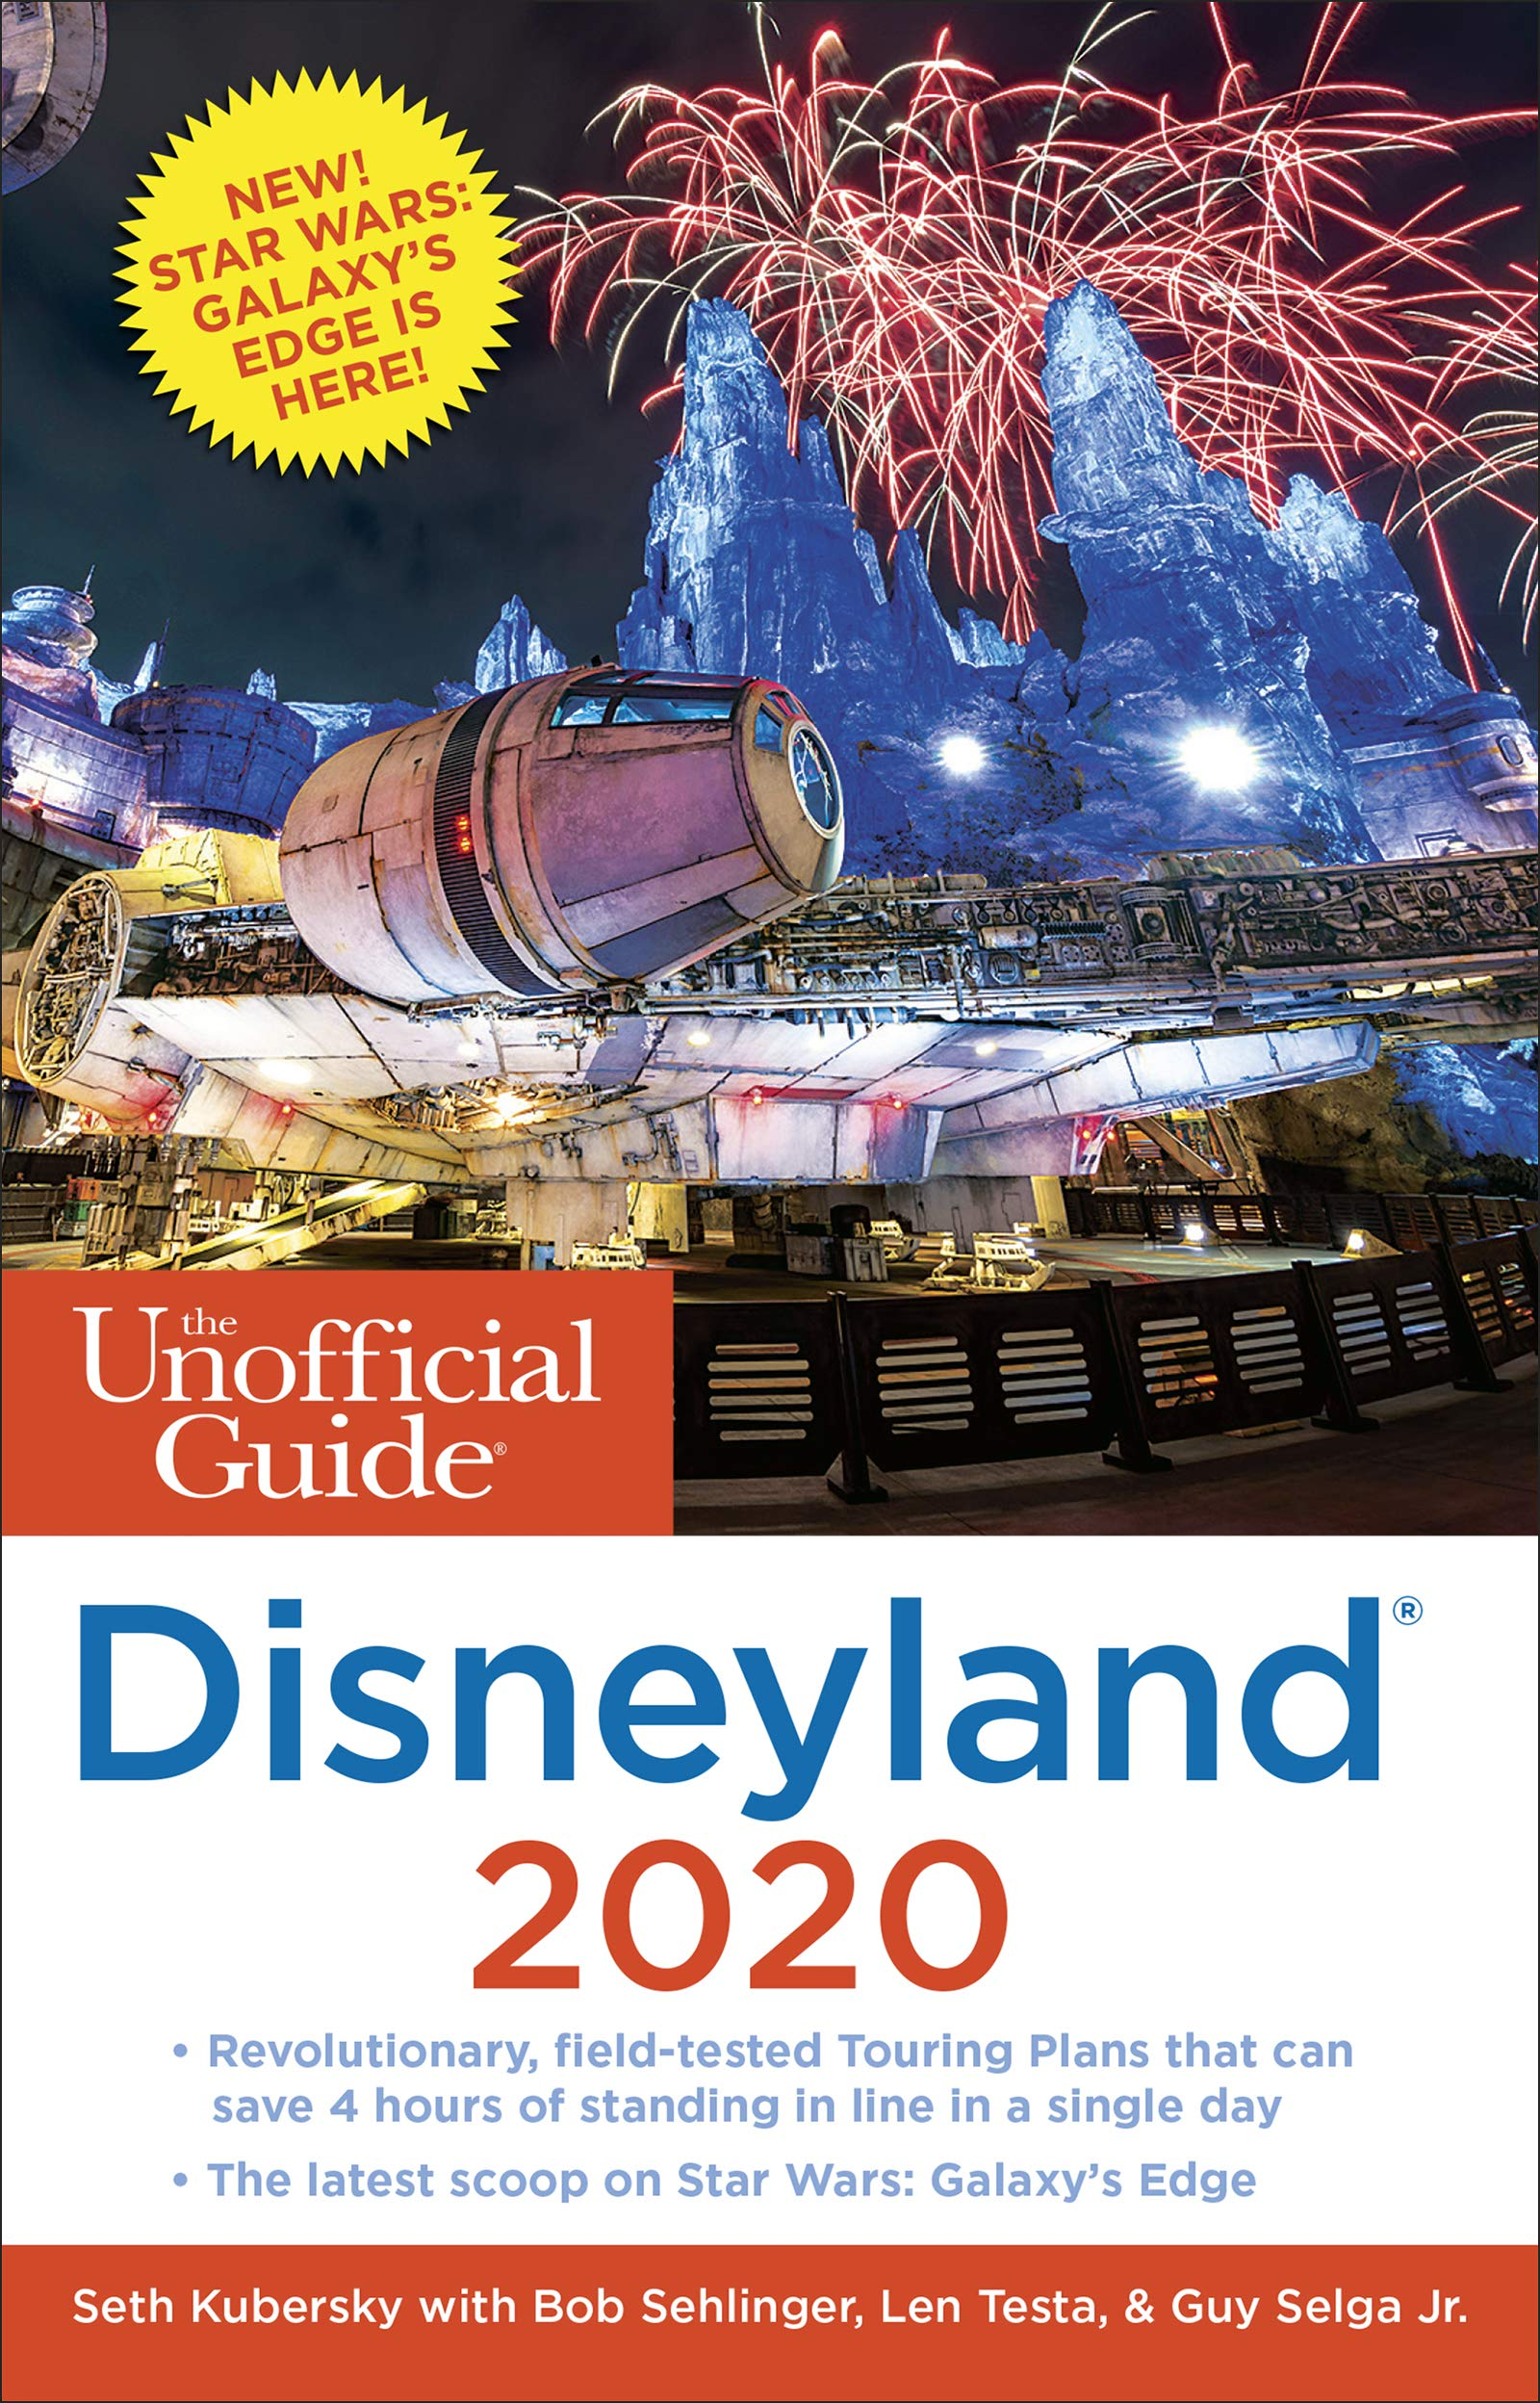 The Unofficial Guide to Disneyland 2020 (The Unofficial Guides) by Unofficial Guides